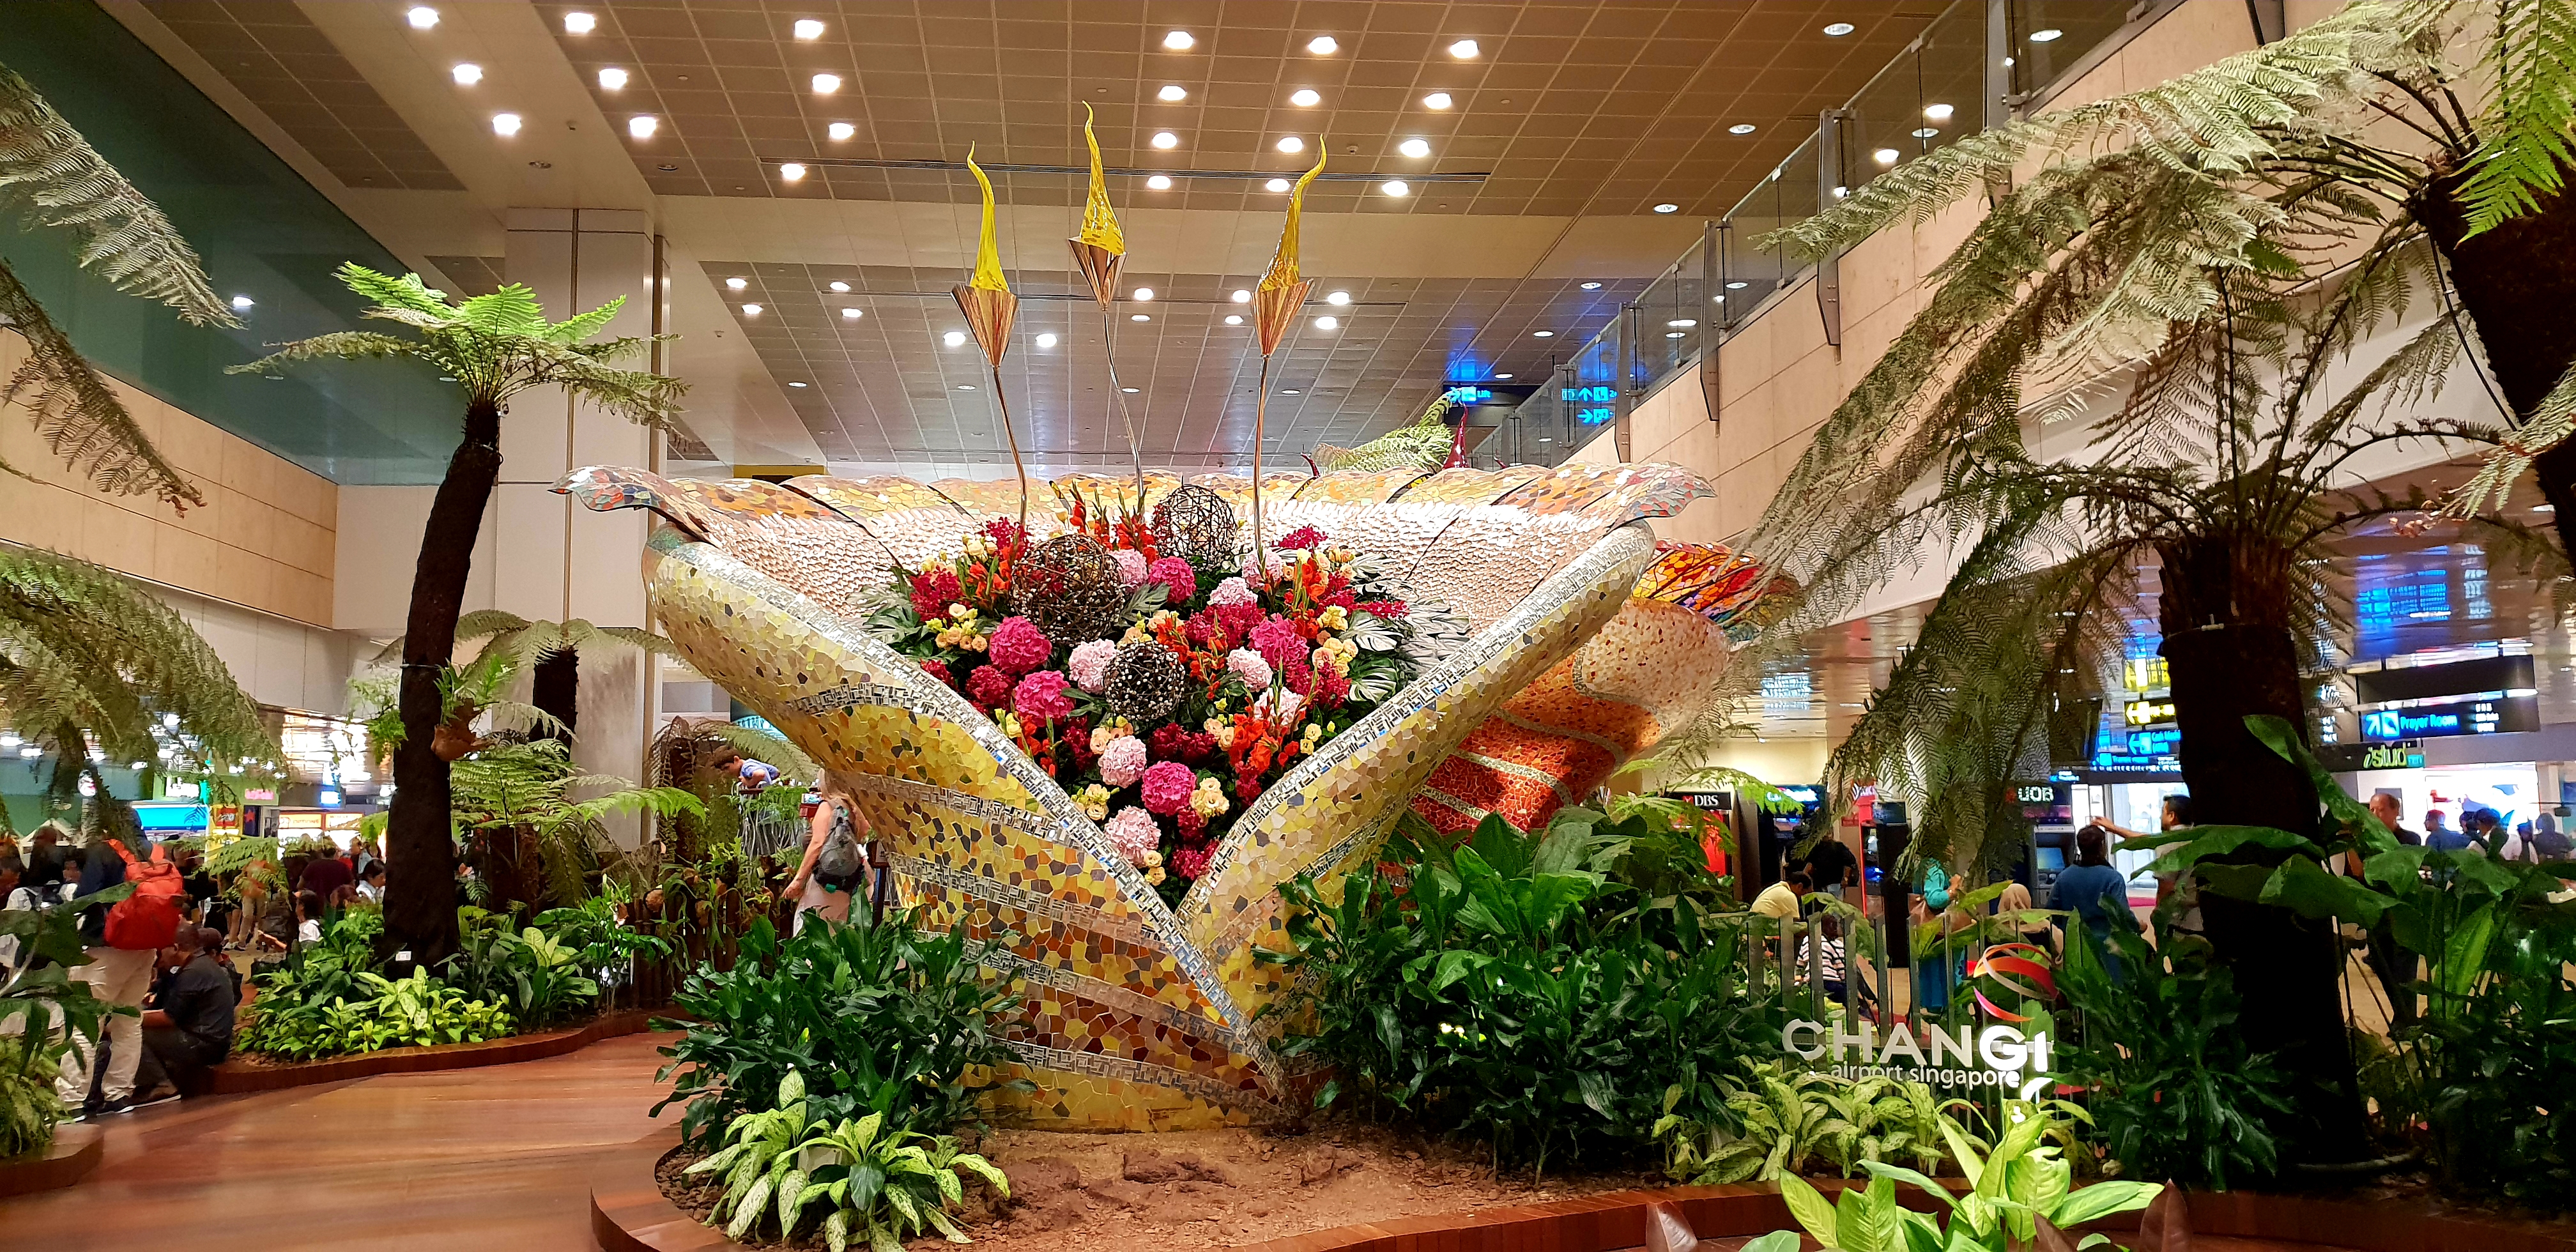 Changi Airport Enchanted Garden